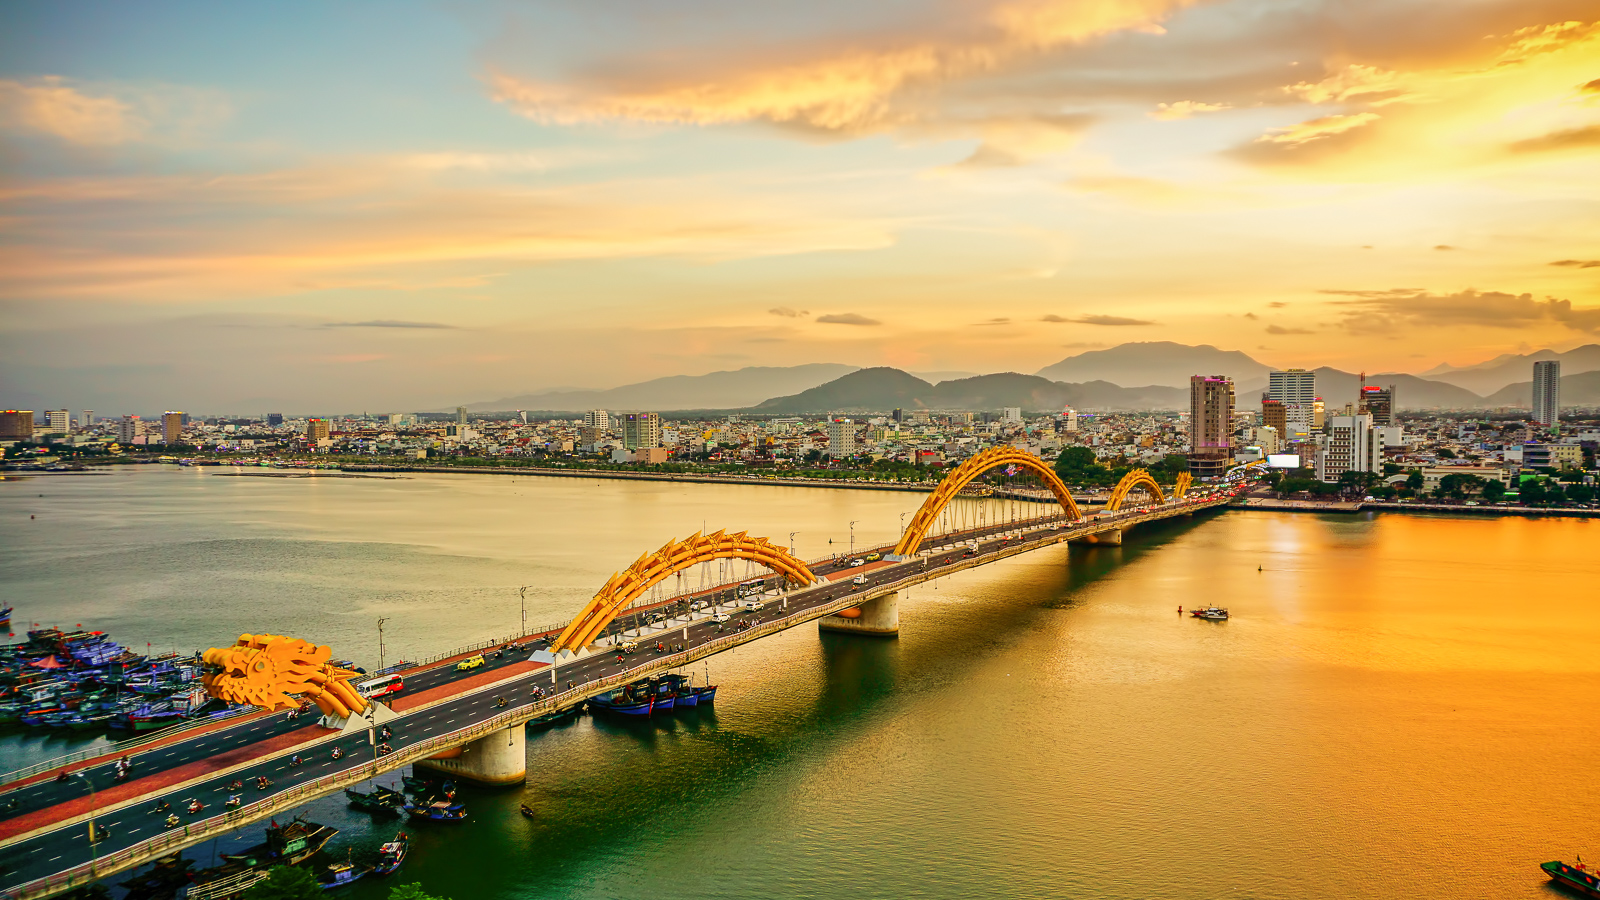 15 Best Things To Do in Da Nang, Vietnam